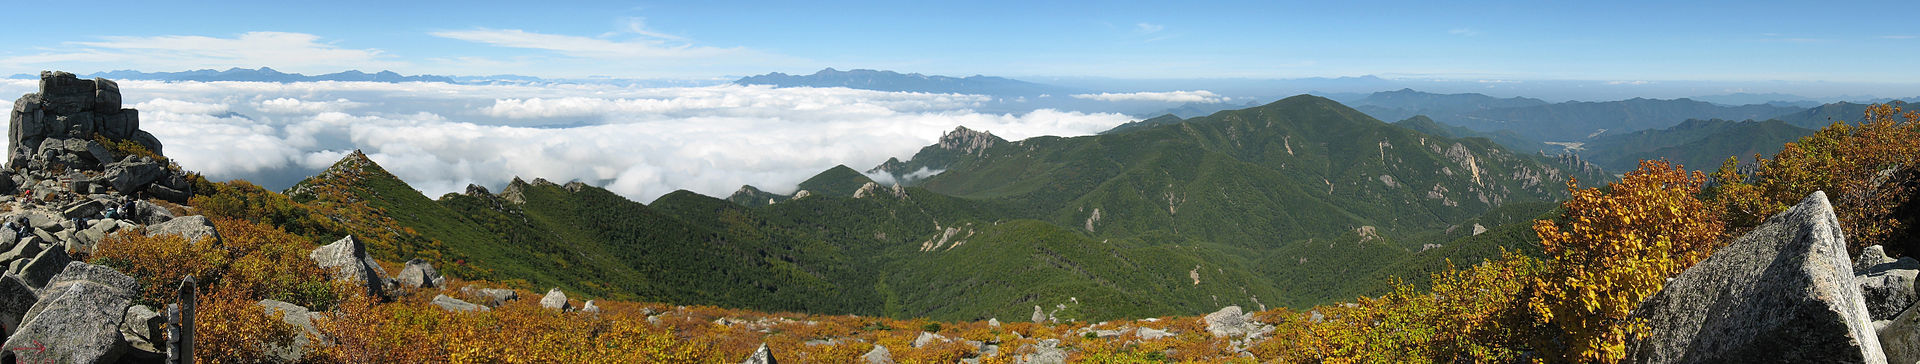 View_from_Mt_Kimpu_01.jpg